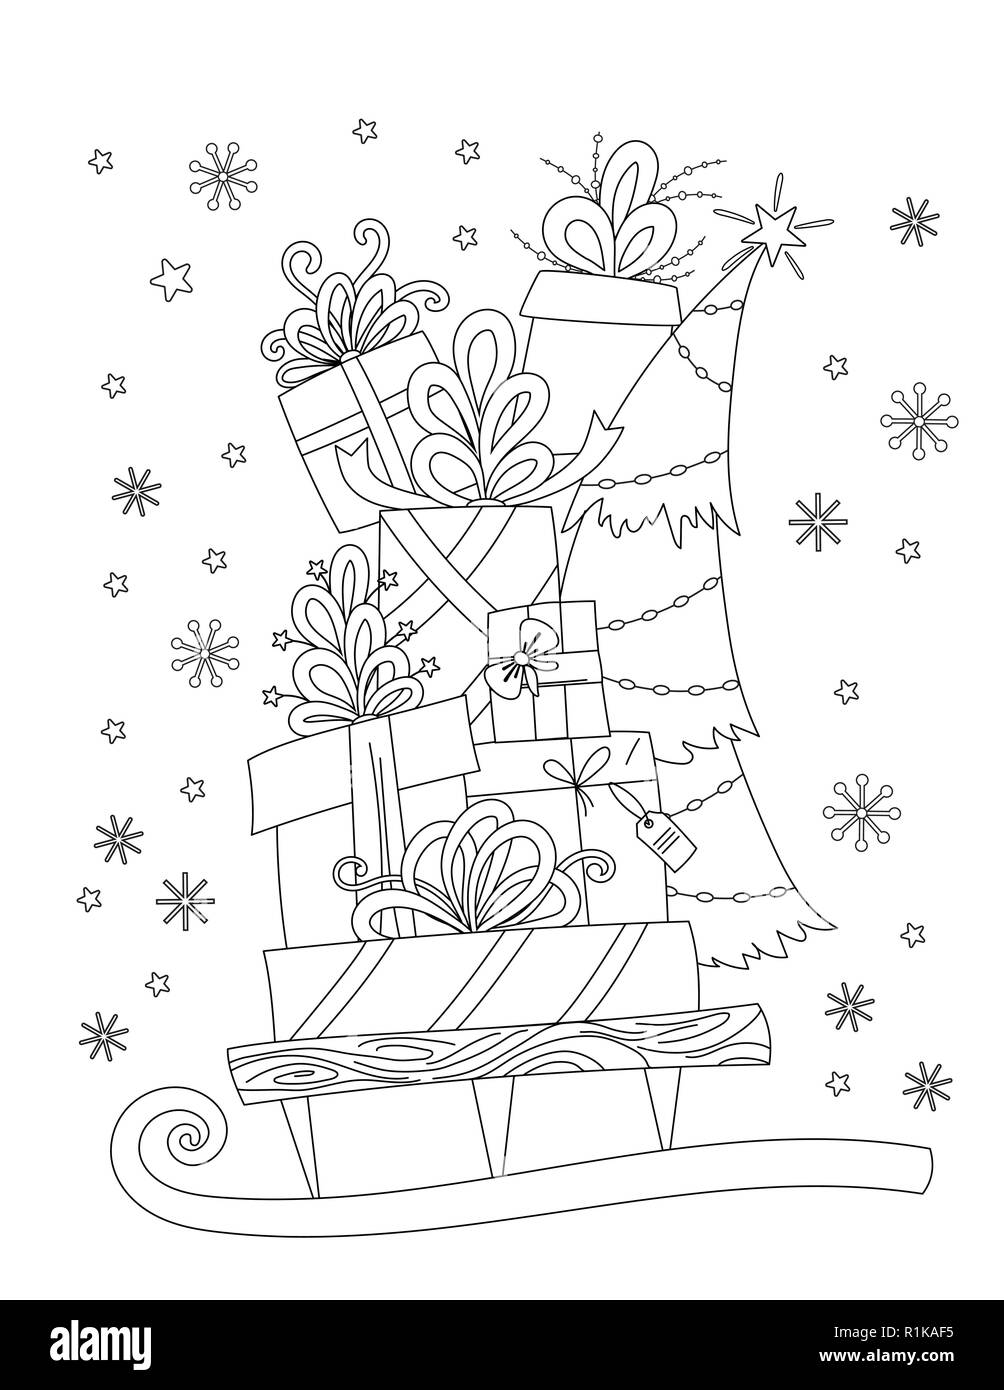 Spongebob Squarepants Happy Christmas Coloring Page - Boys ... | 1390x1004